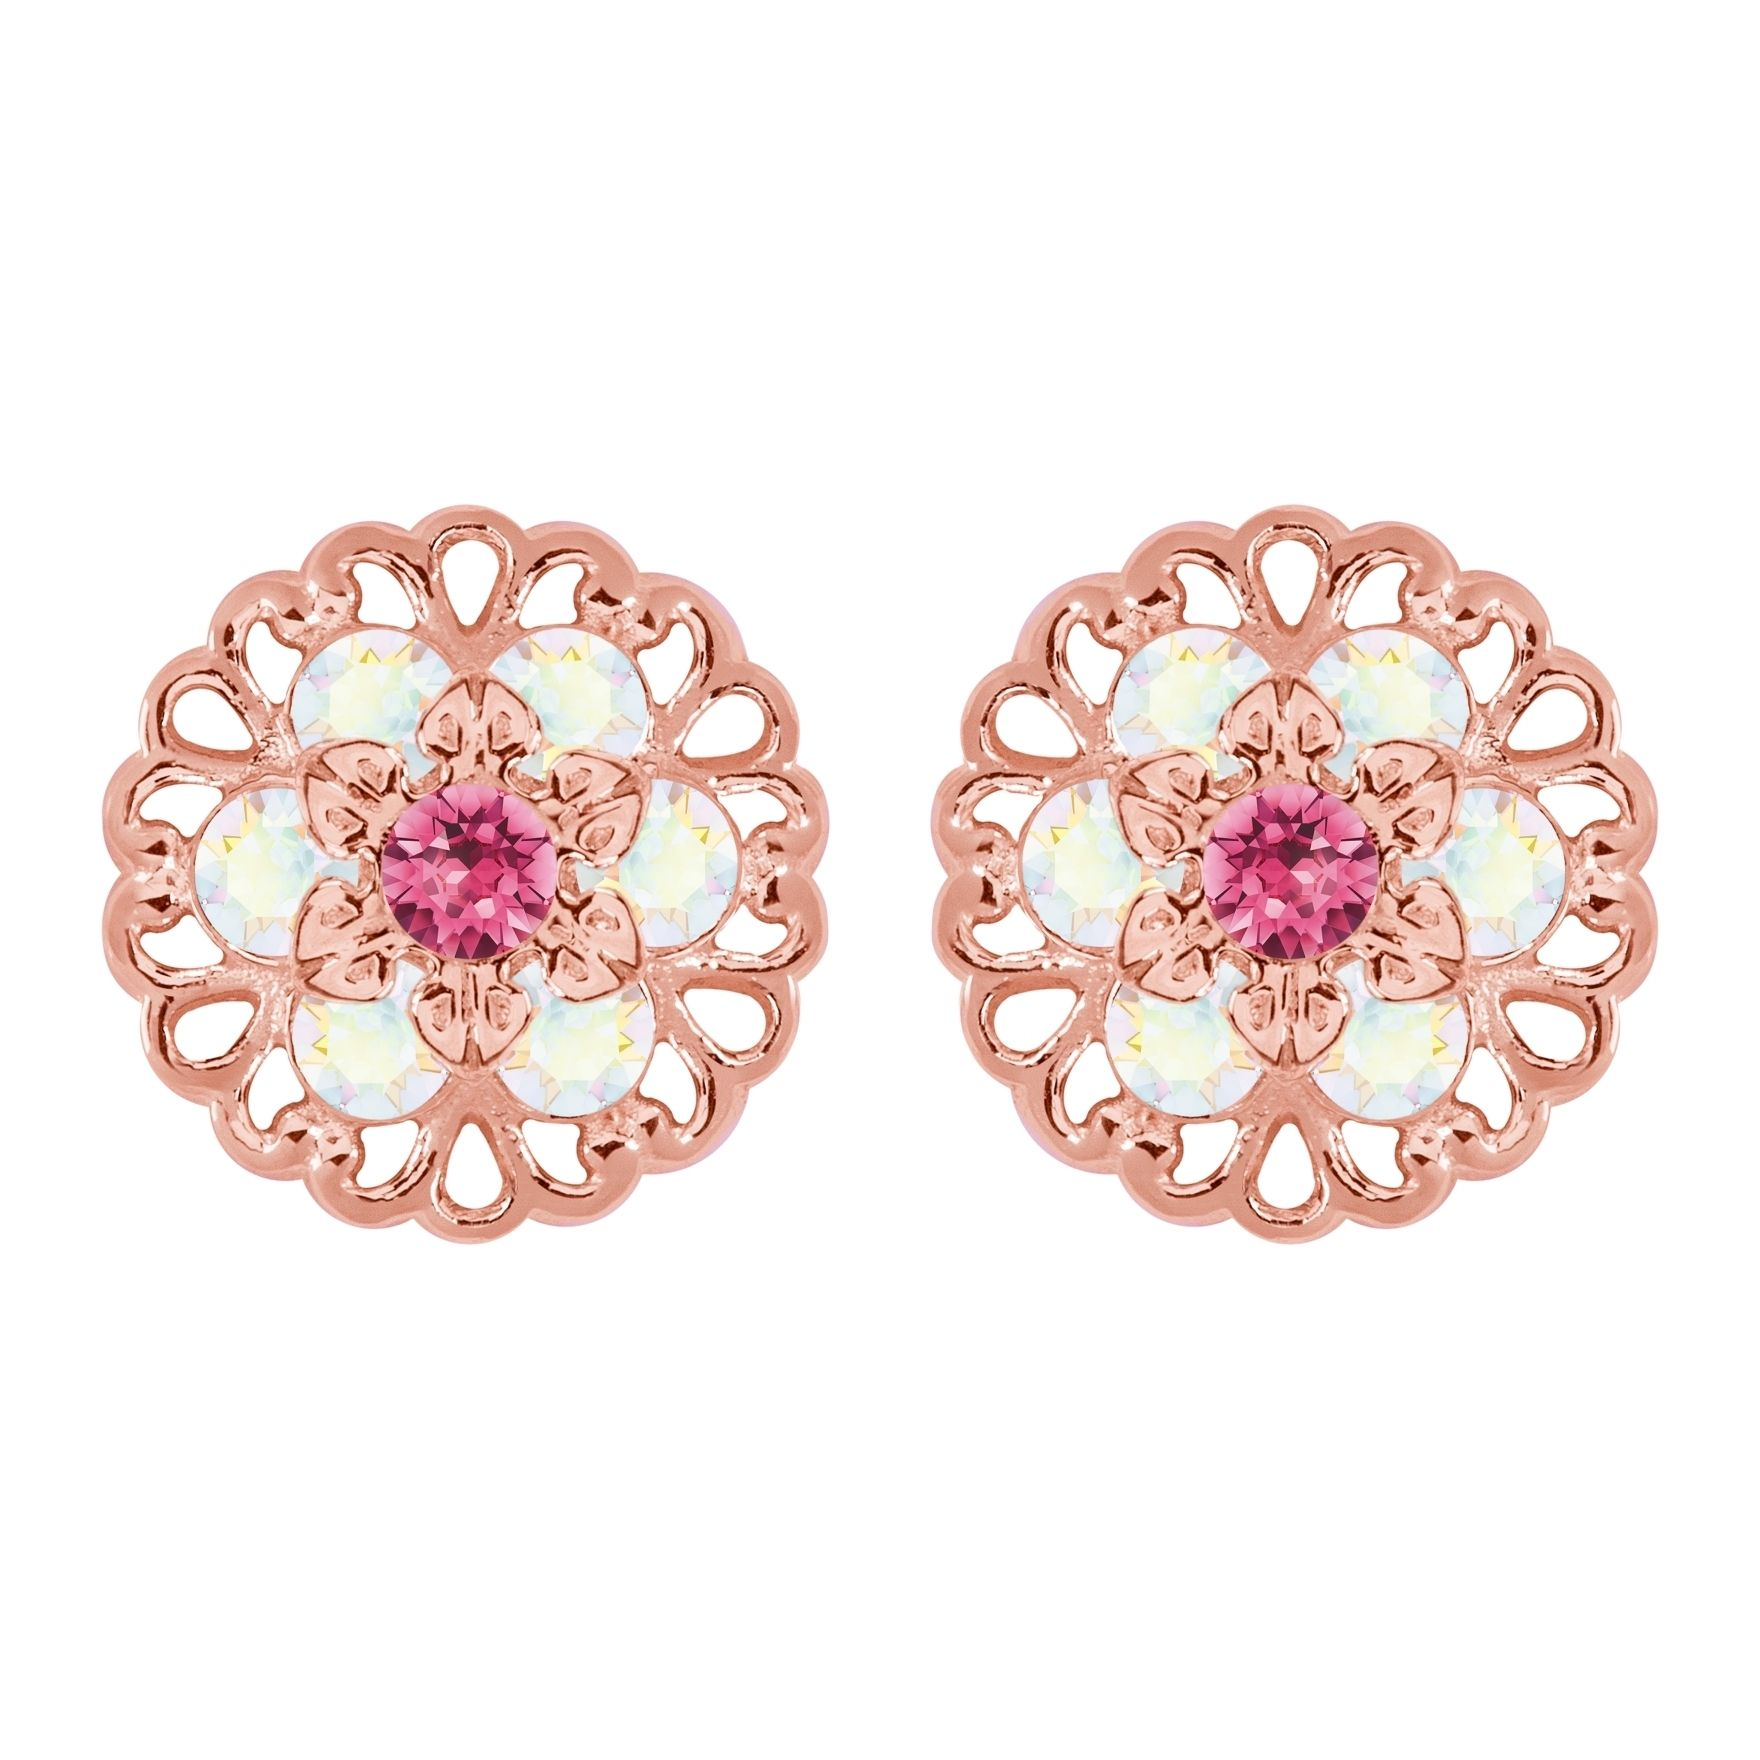 Lucia Costin Rose Goldplated Sterling Silver Pink/ White Earrings